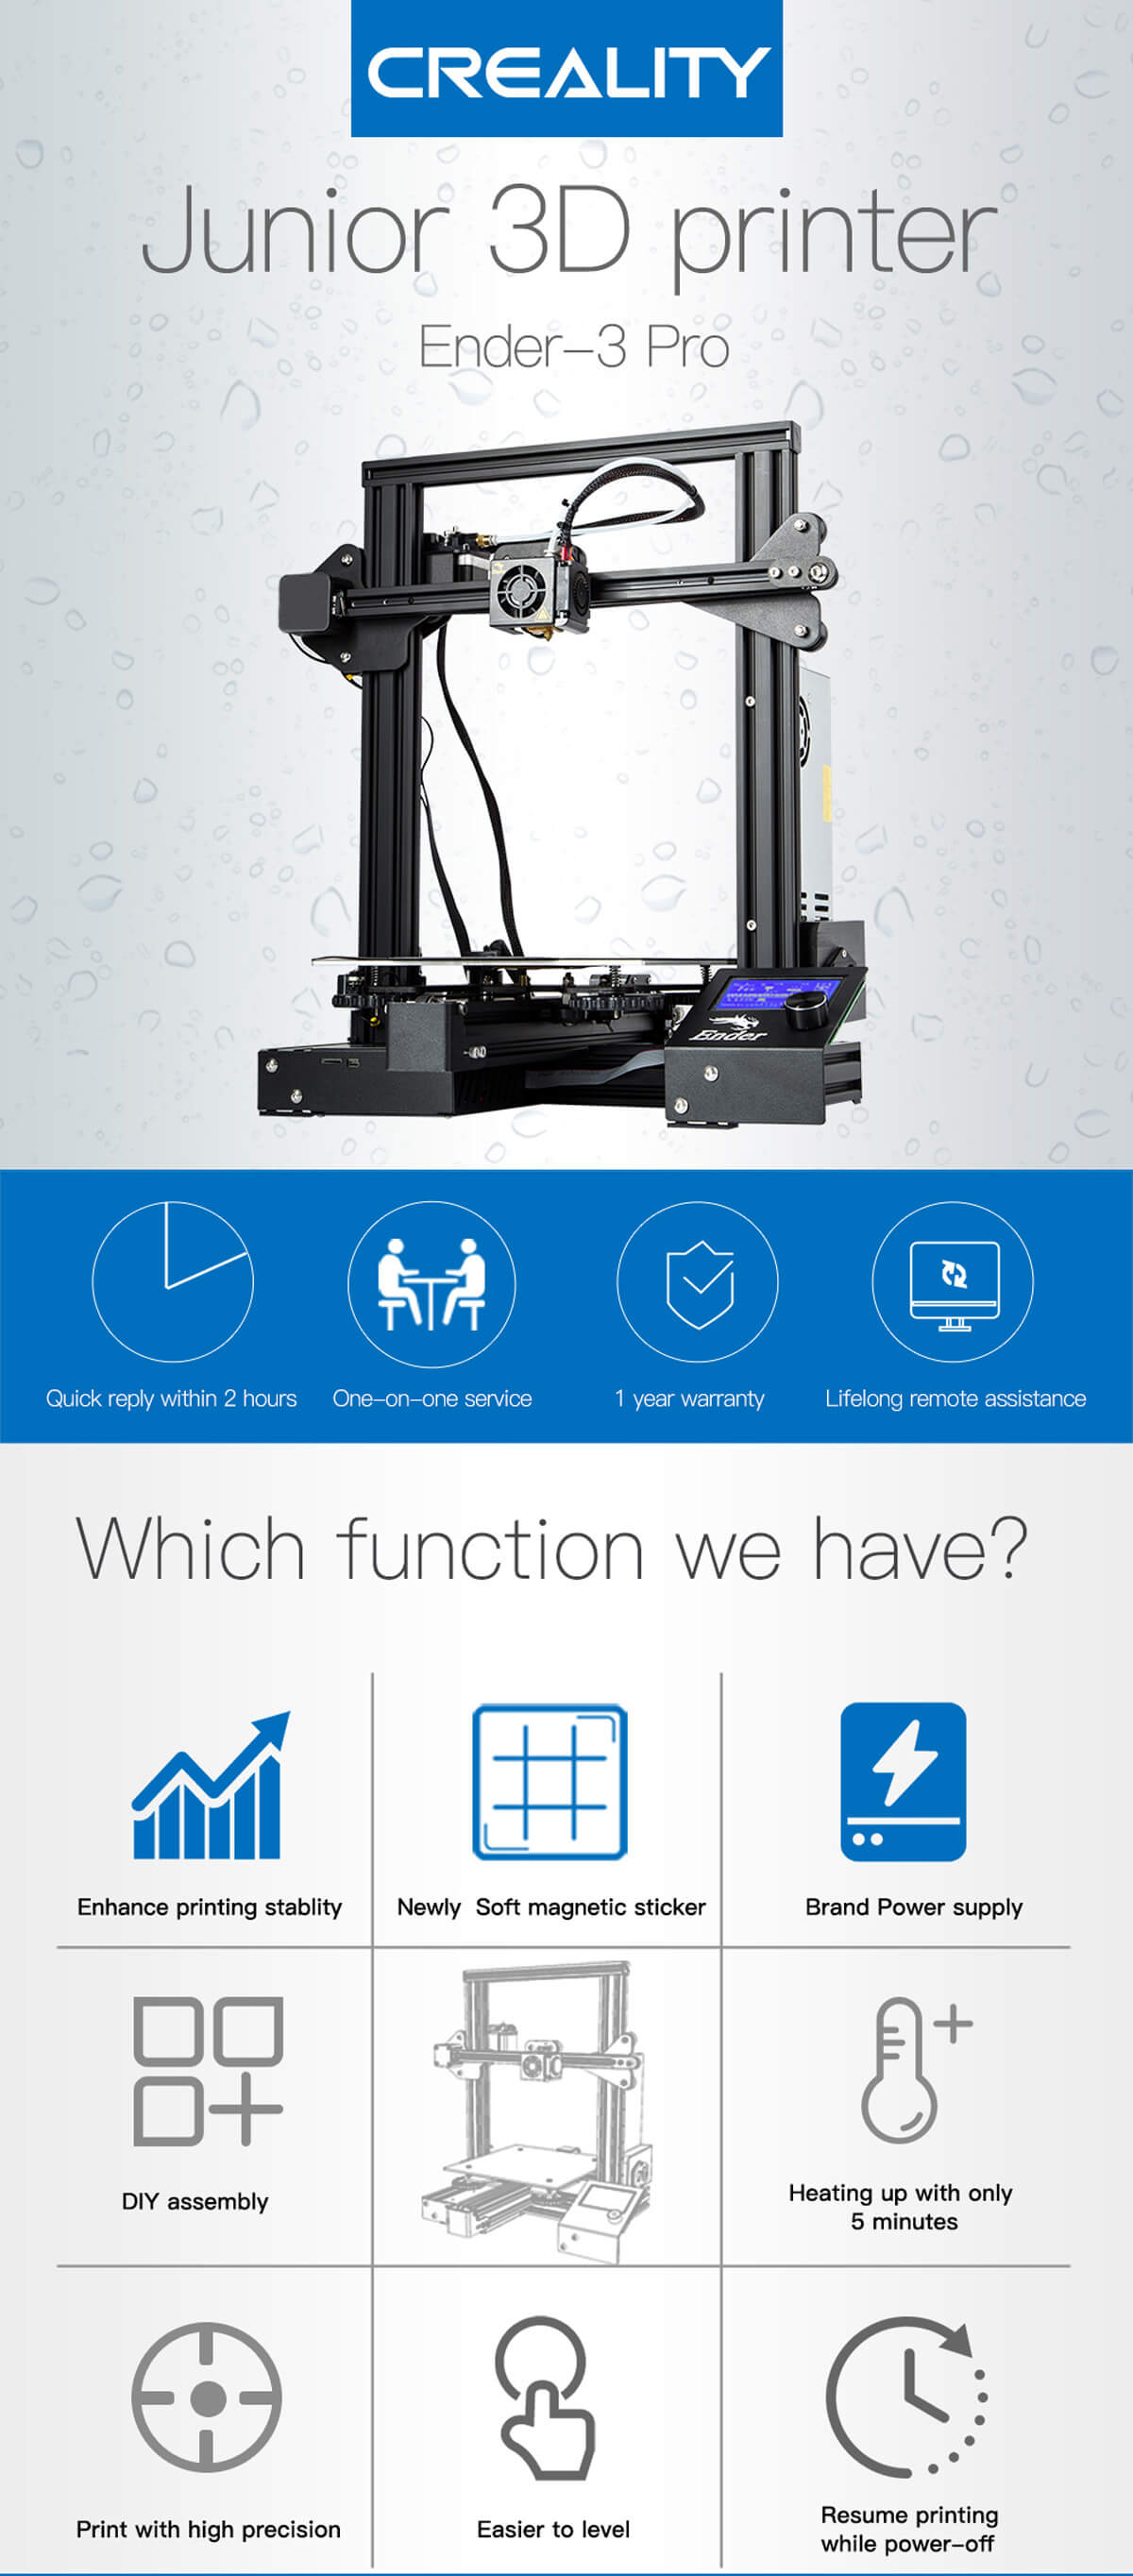 CREALITY 3D Printer Ender 3 Pro - CREALITY Global